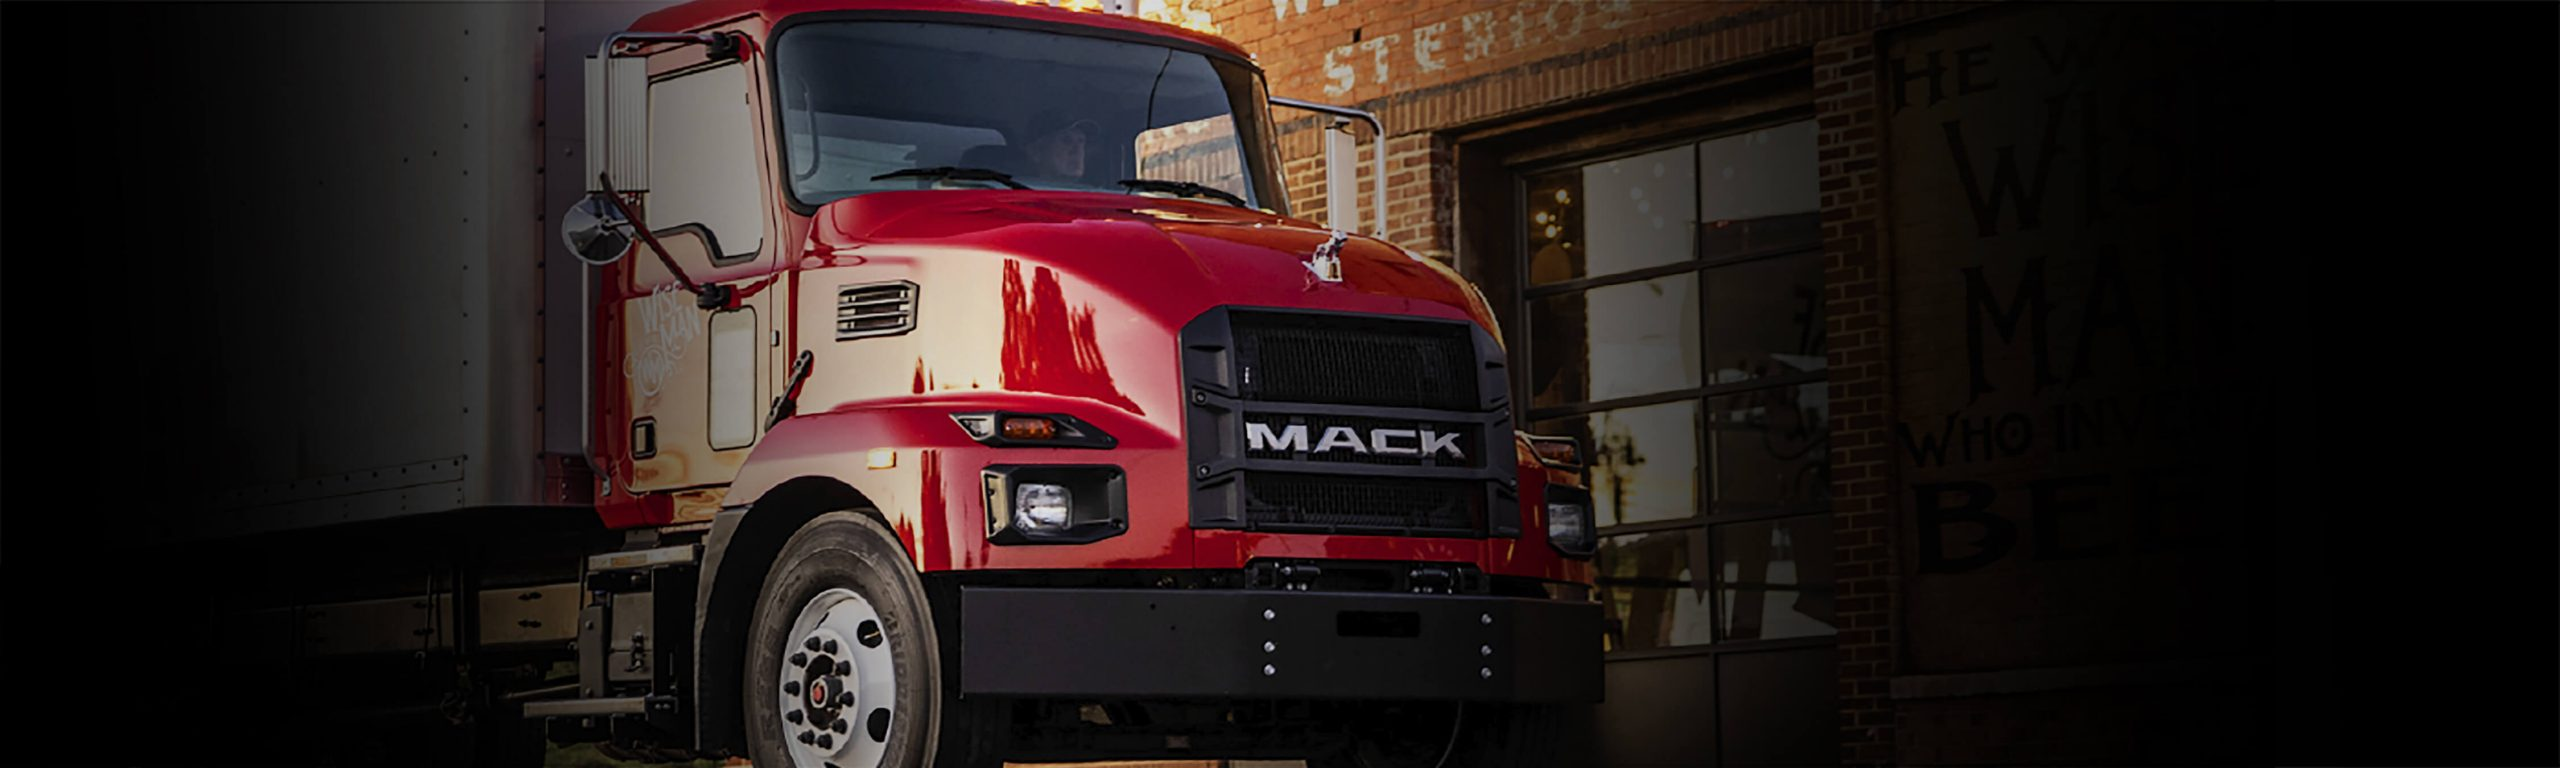 Mack MD Series